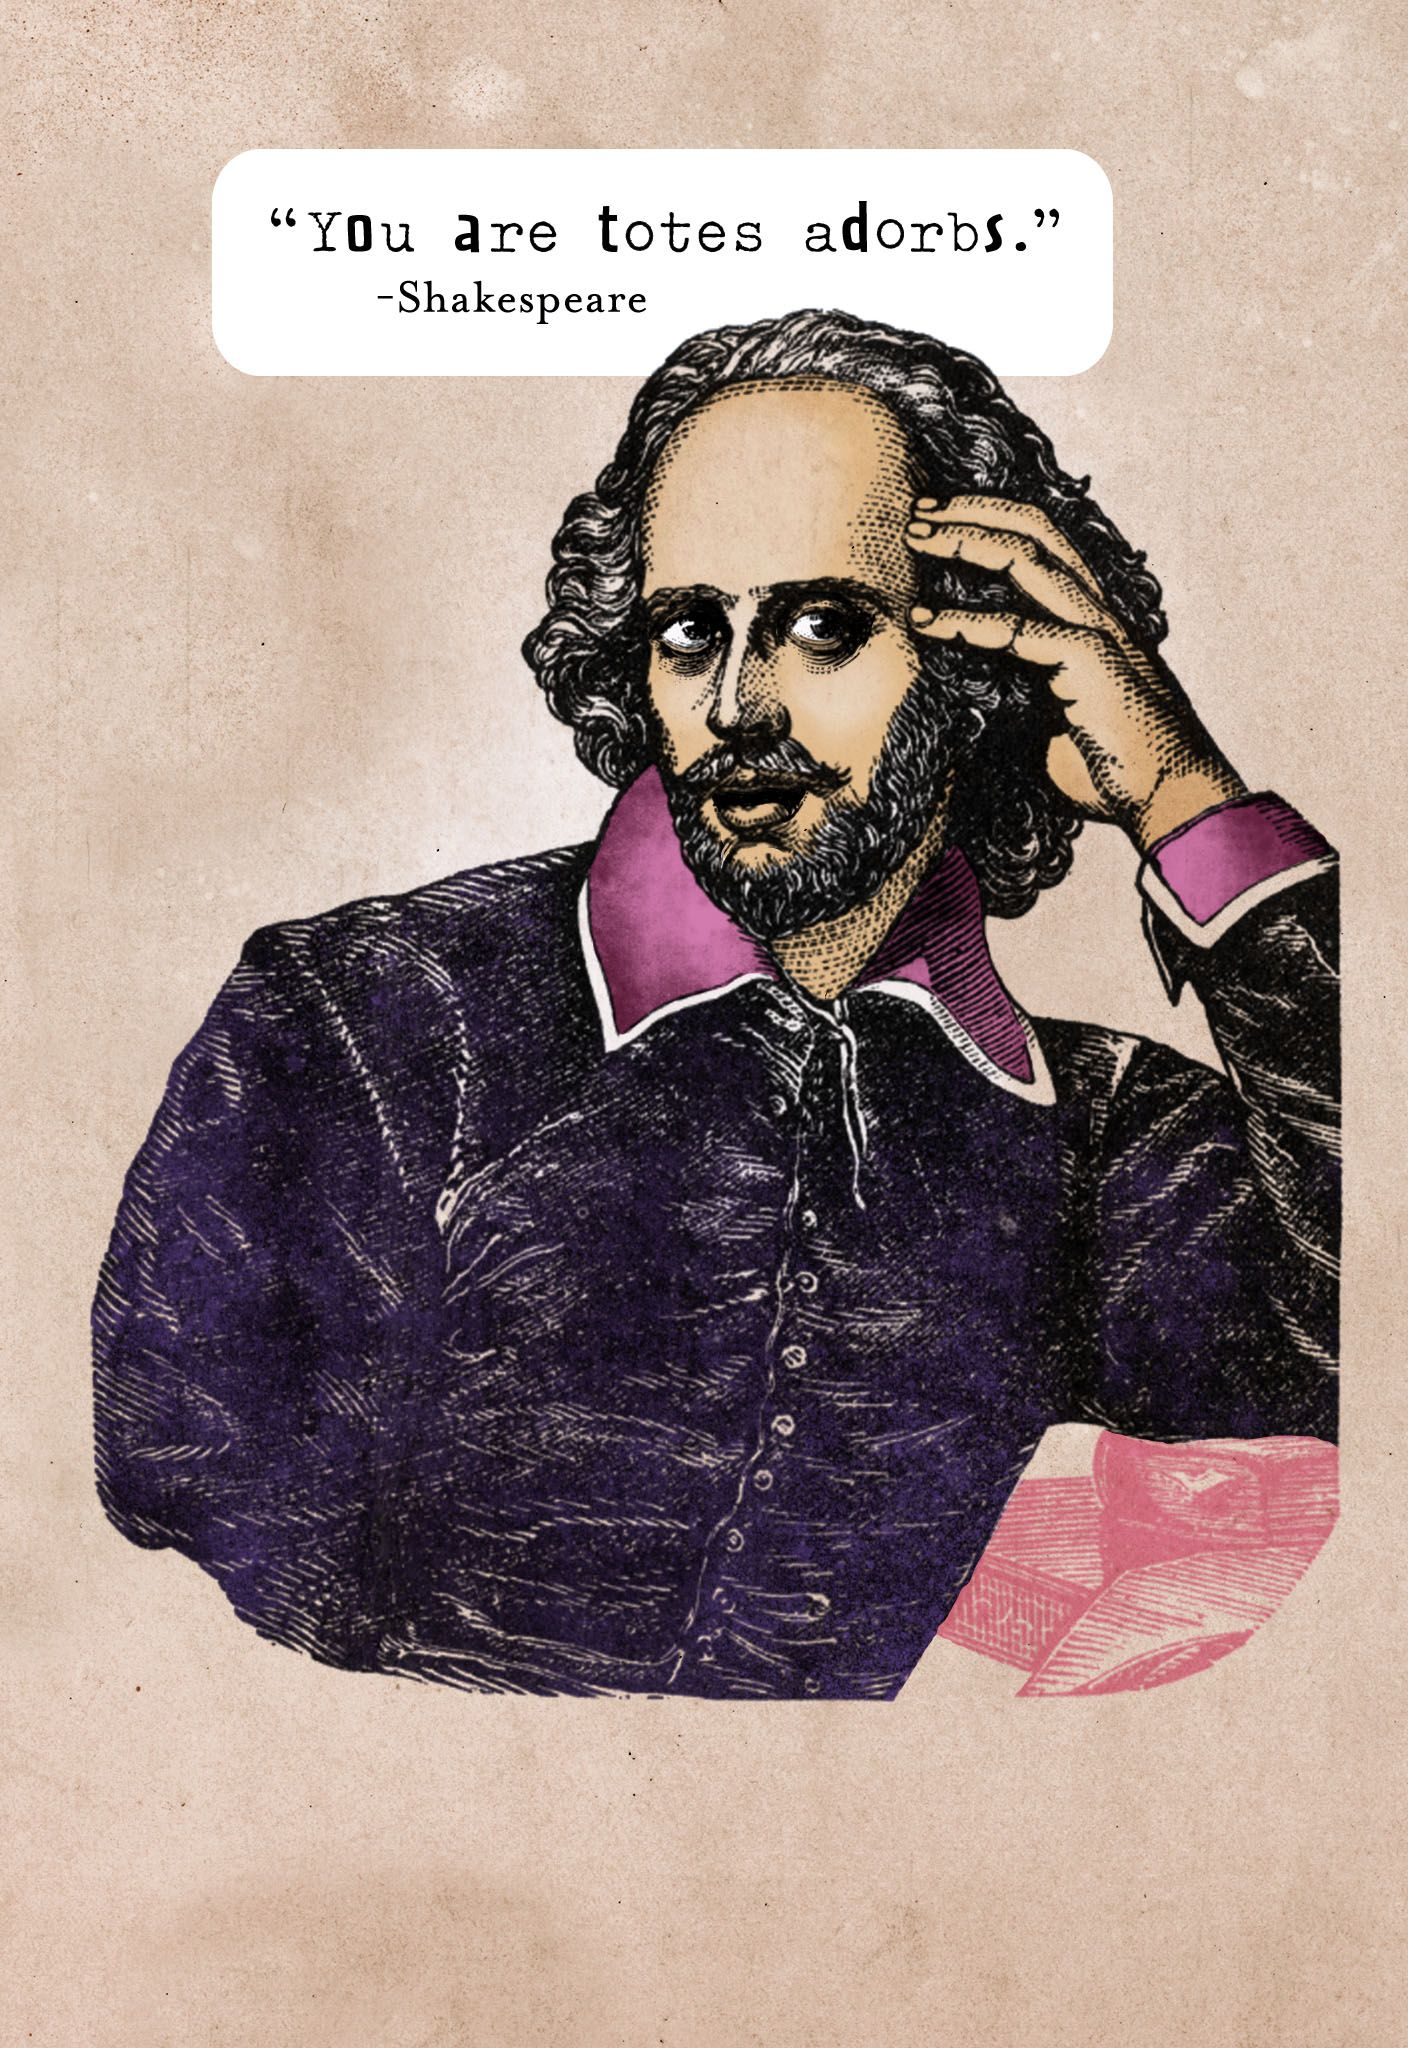 Happy Valentine S Day From Shakespeare And Hallmark Funny Birthday Cards Shakespeare Funny Totes Adorbs